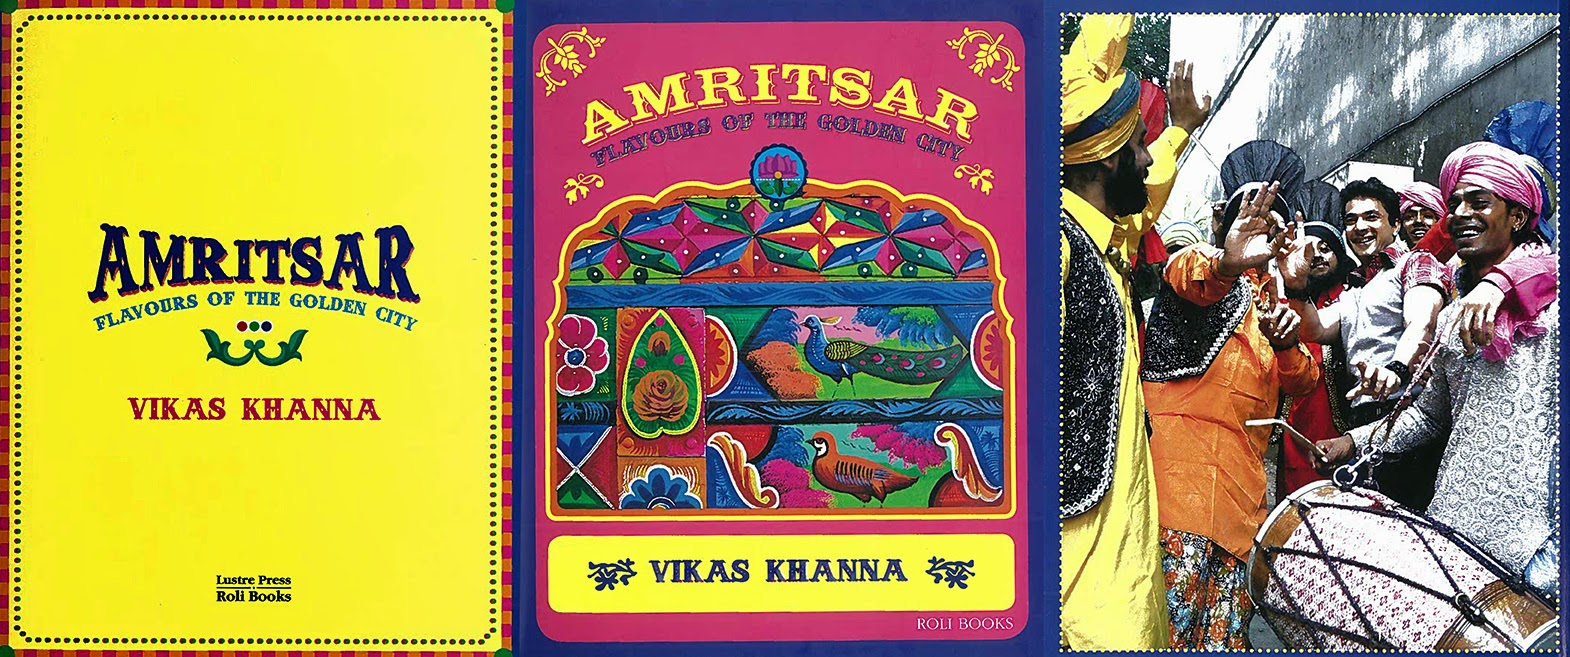 amritsar food walk trail vikas khanna